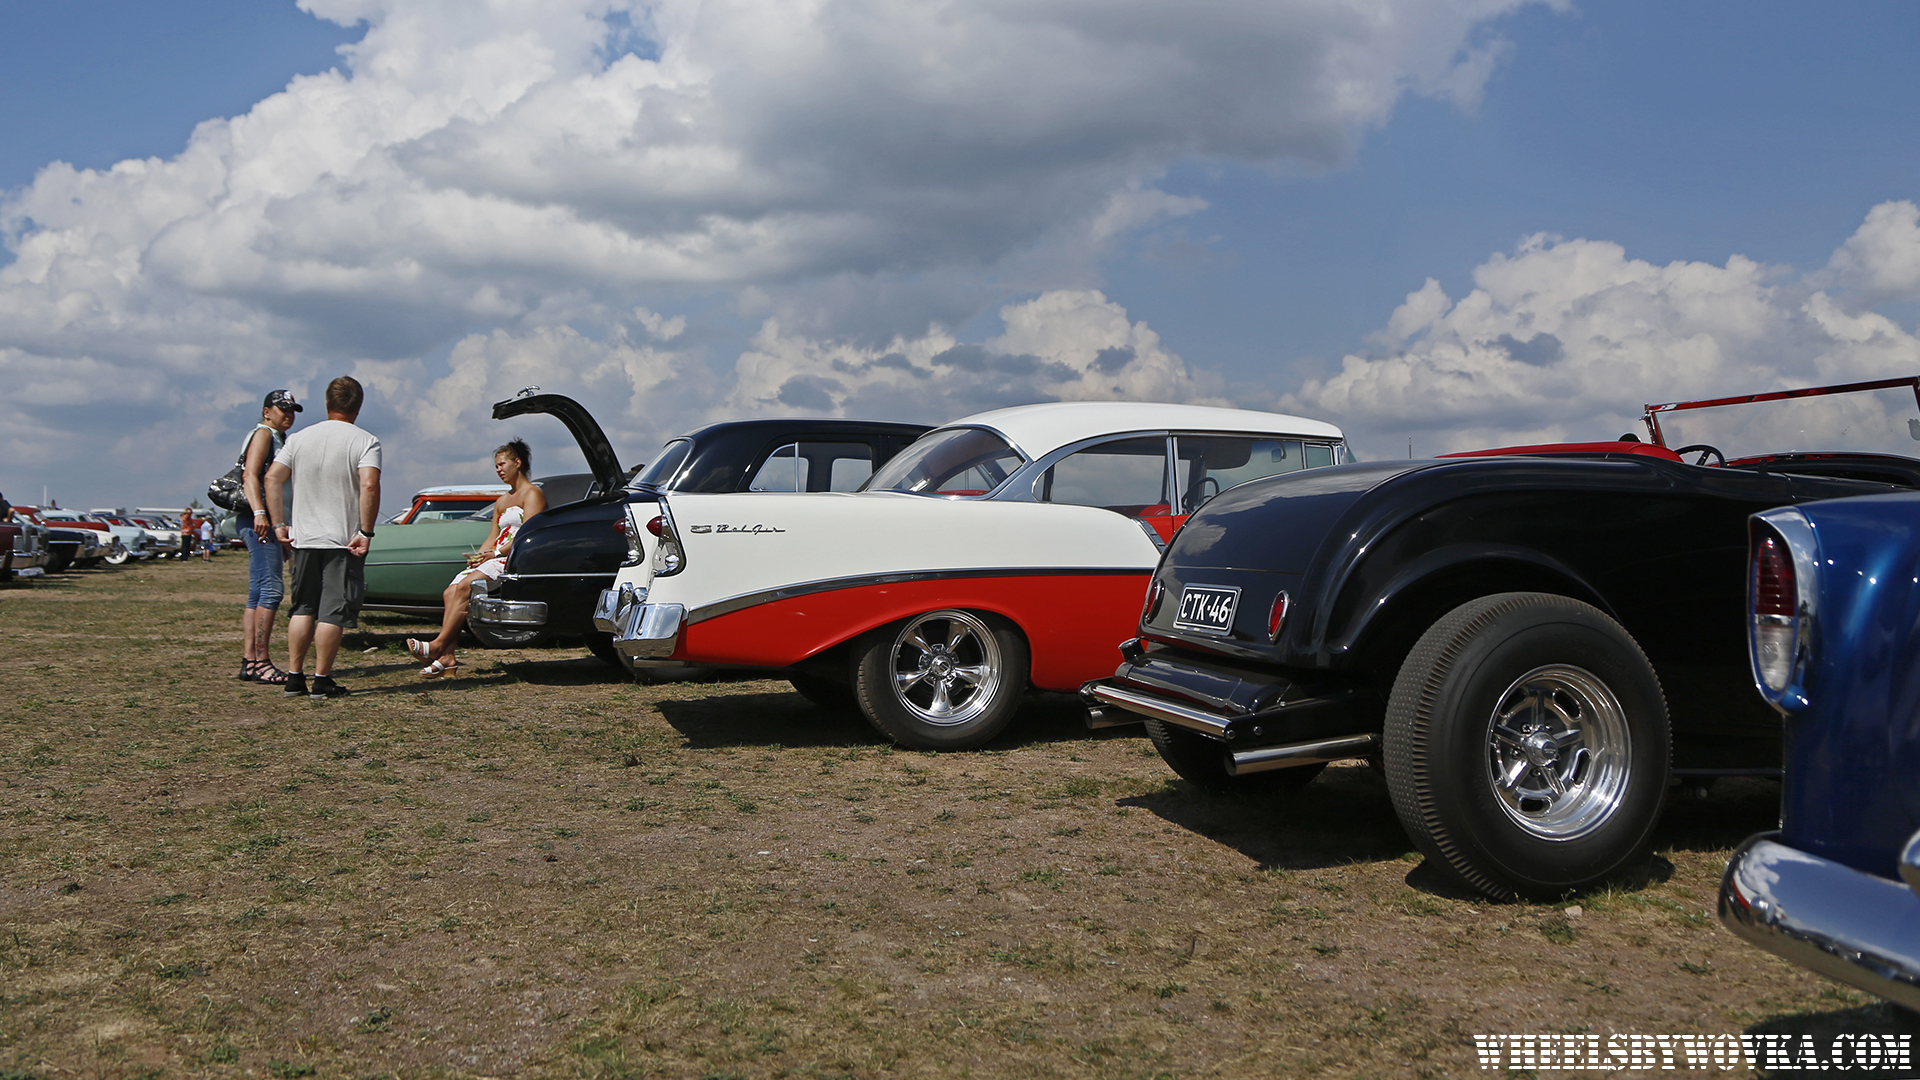 do-dads-vintage-drag-show-finland-by-wheelsbywovka-29